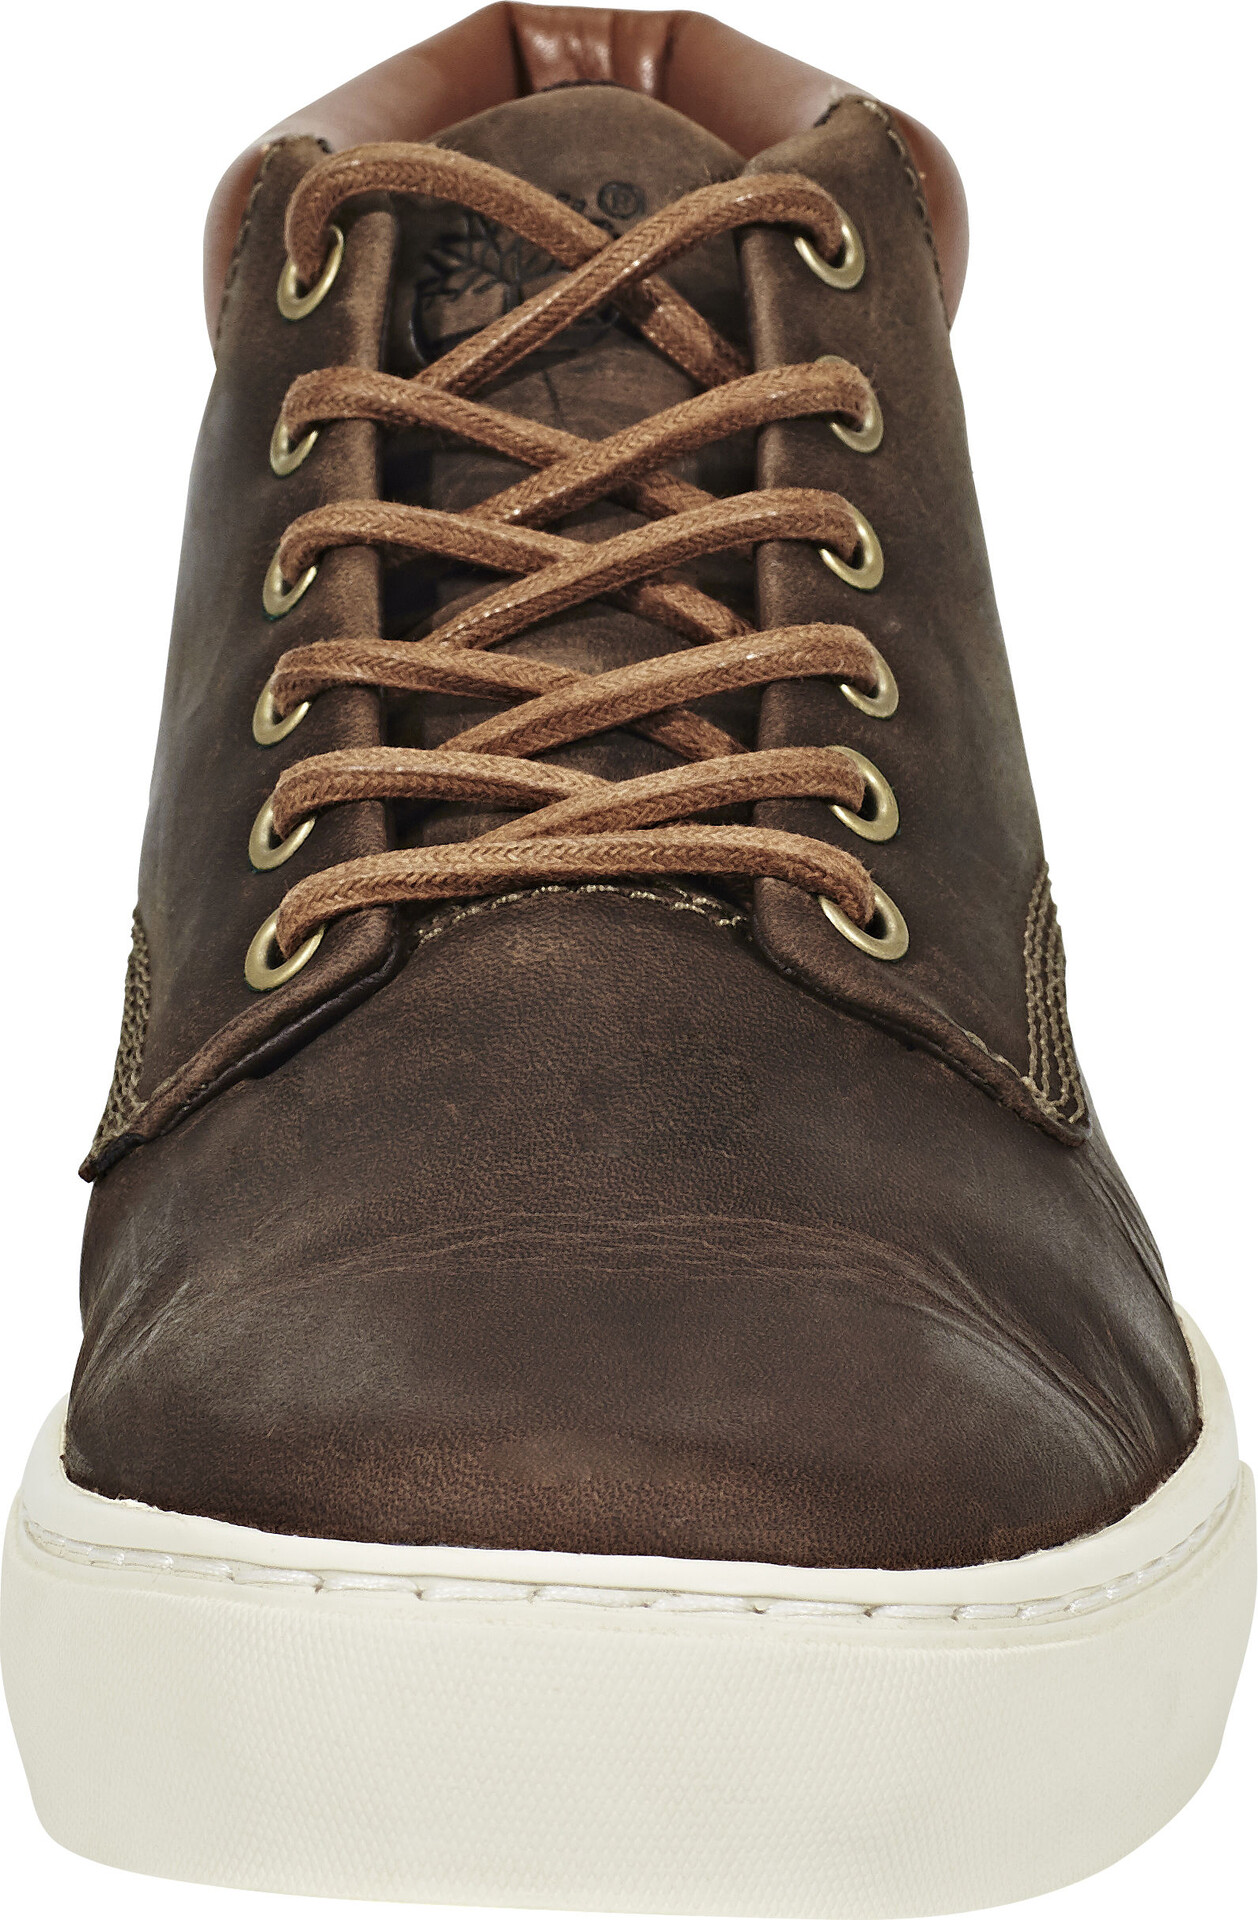 0 Marron Chukka Homme Chaussures 2 Adventure Cupsole Timberland FPwFzq46